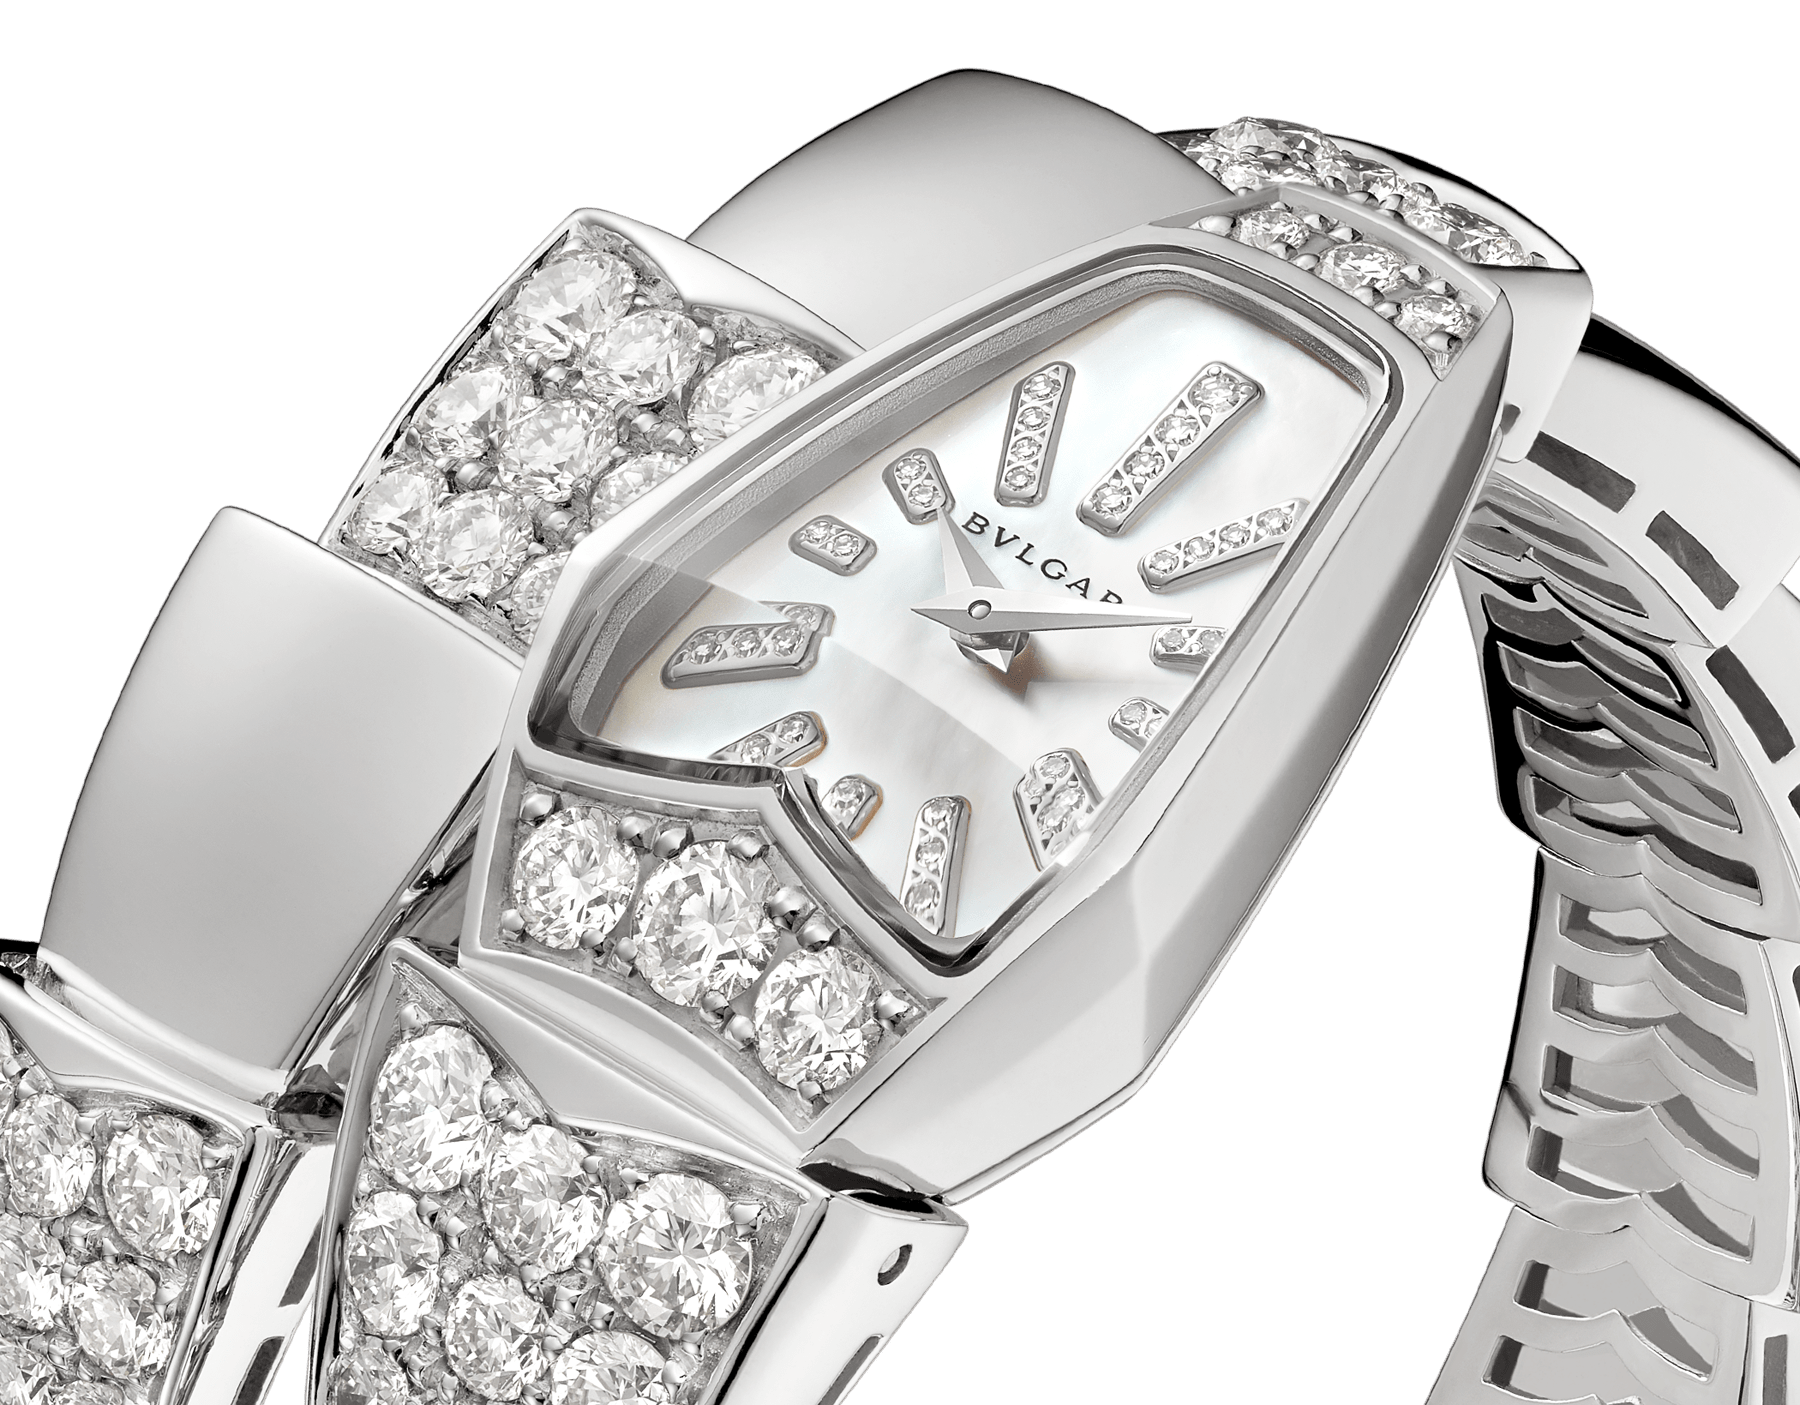 Serpenti Jewellery Watch in 18 kt white gold case and single spiral bracelet, both set with brilliant cut diamonds, white mother-of-pearl dial and diamond indexes. 101787 image 2